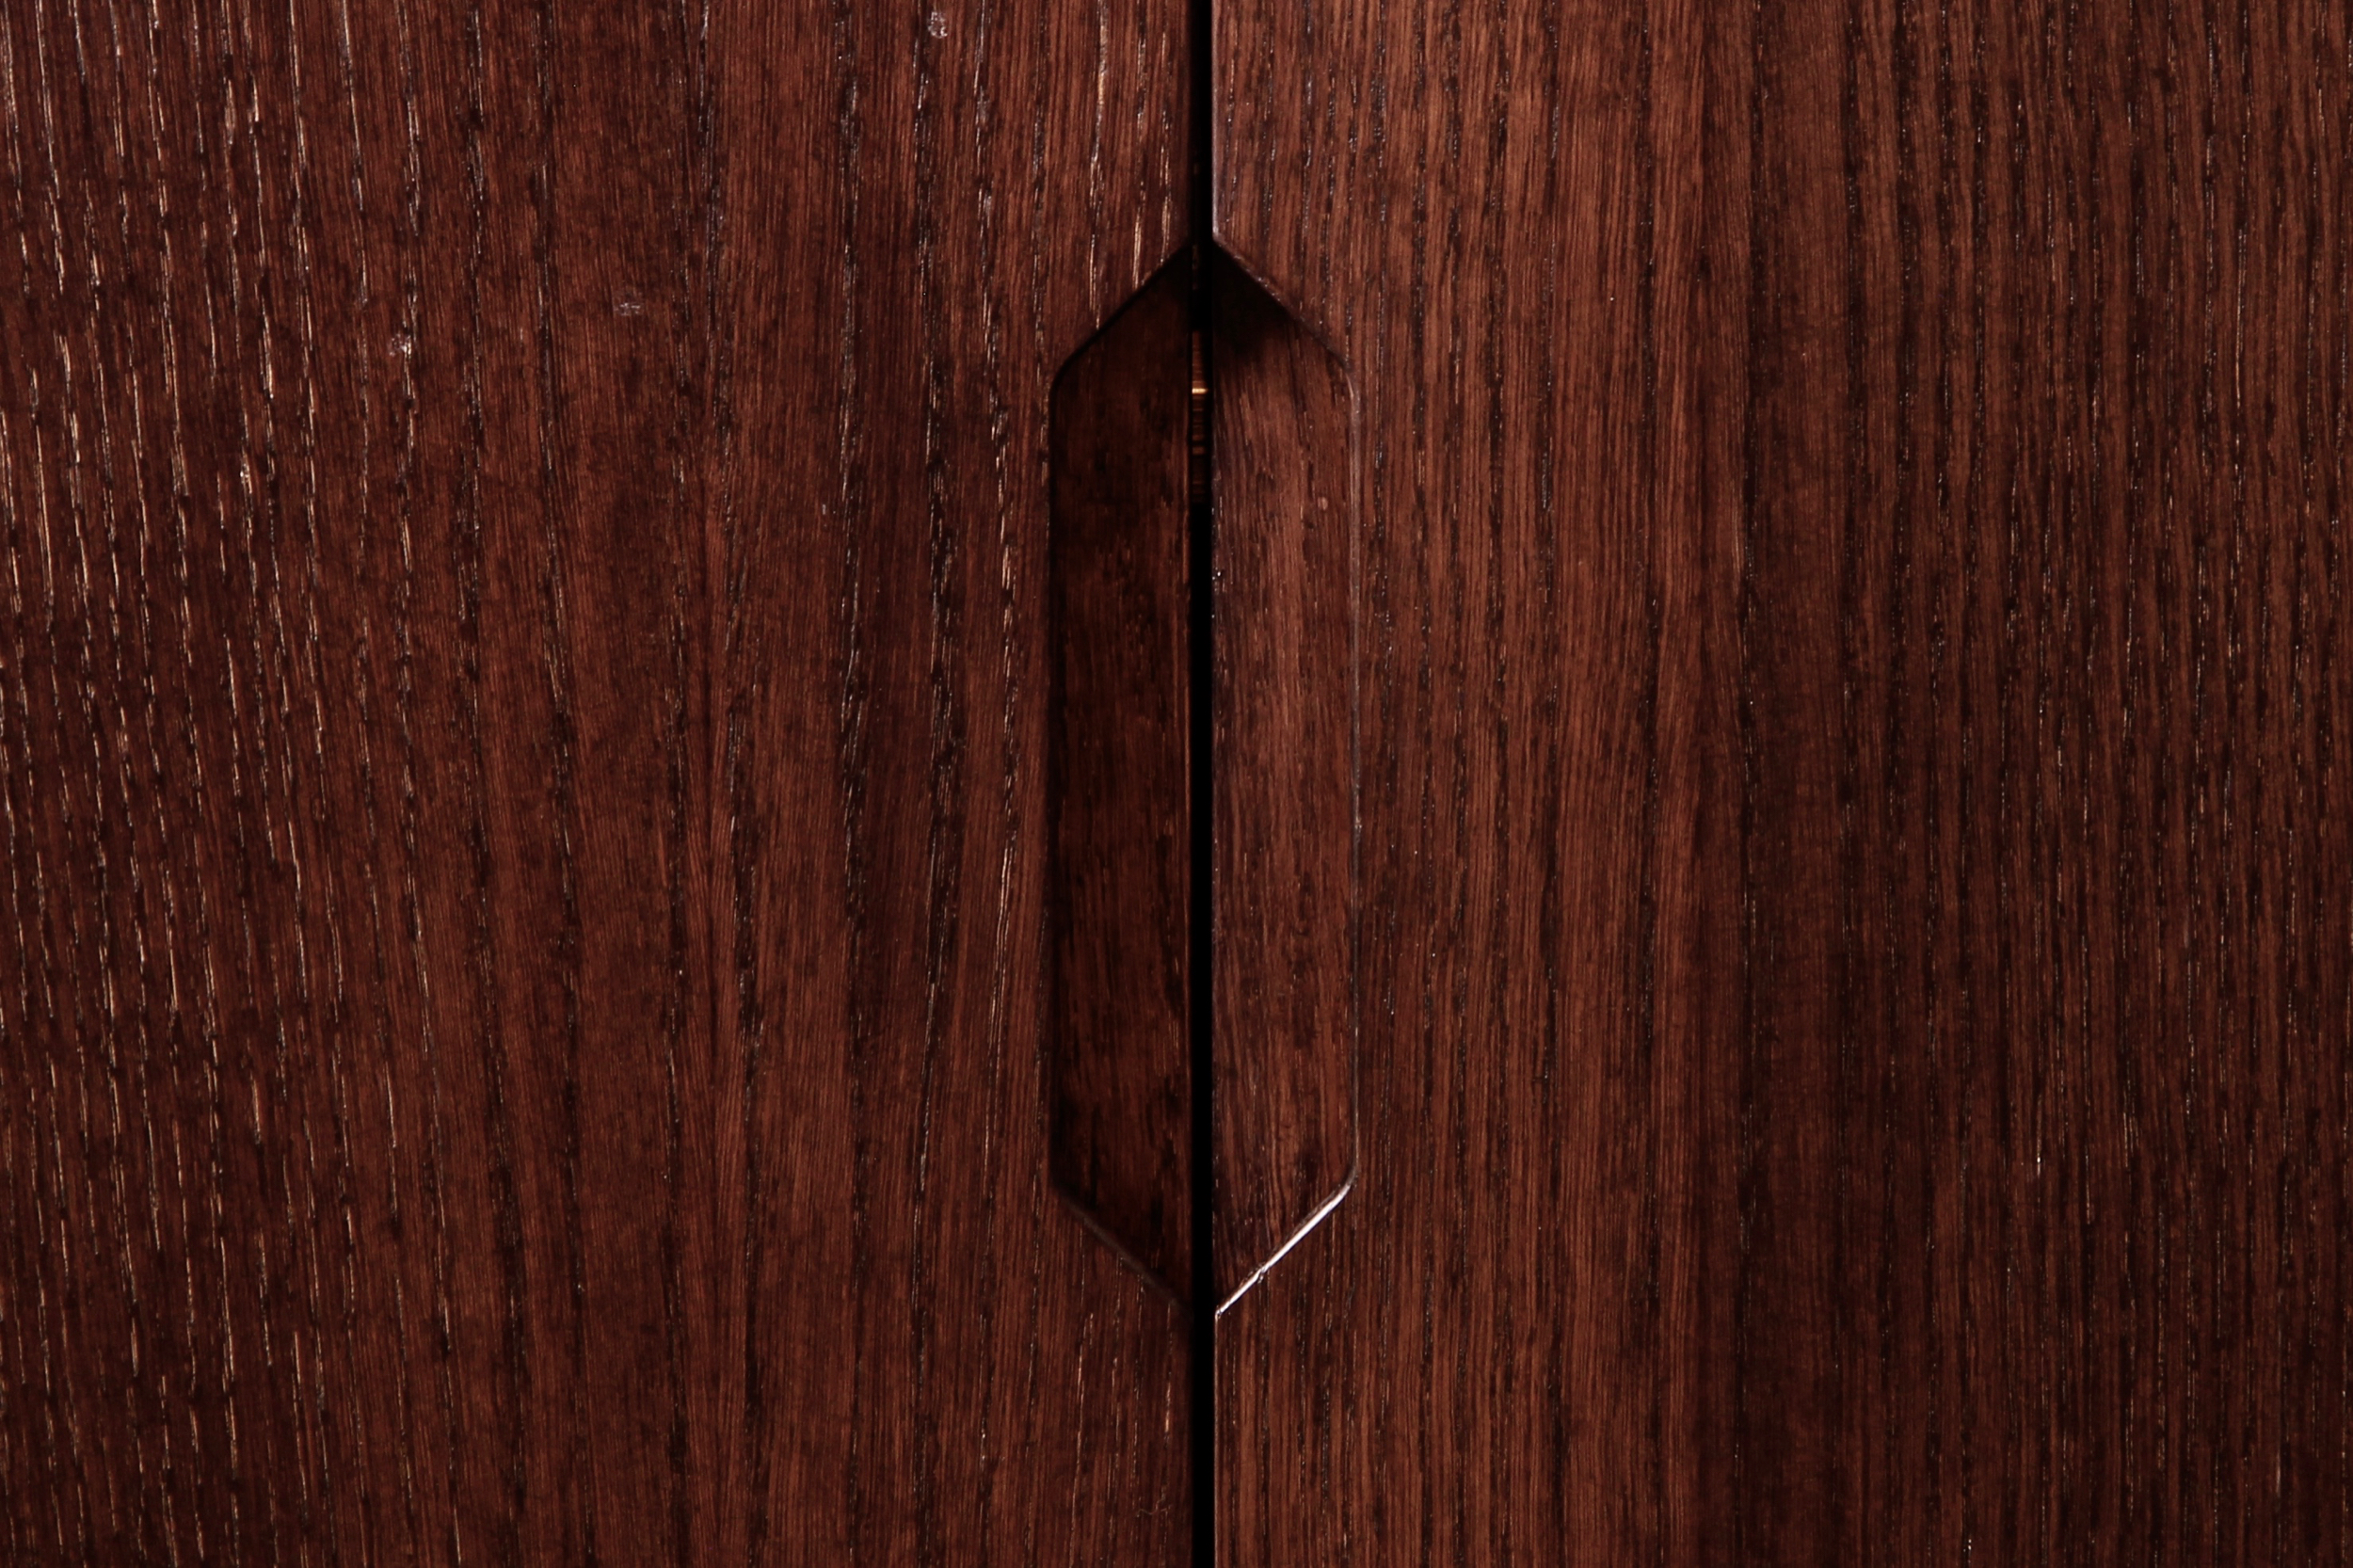 Recessed handle detail